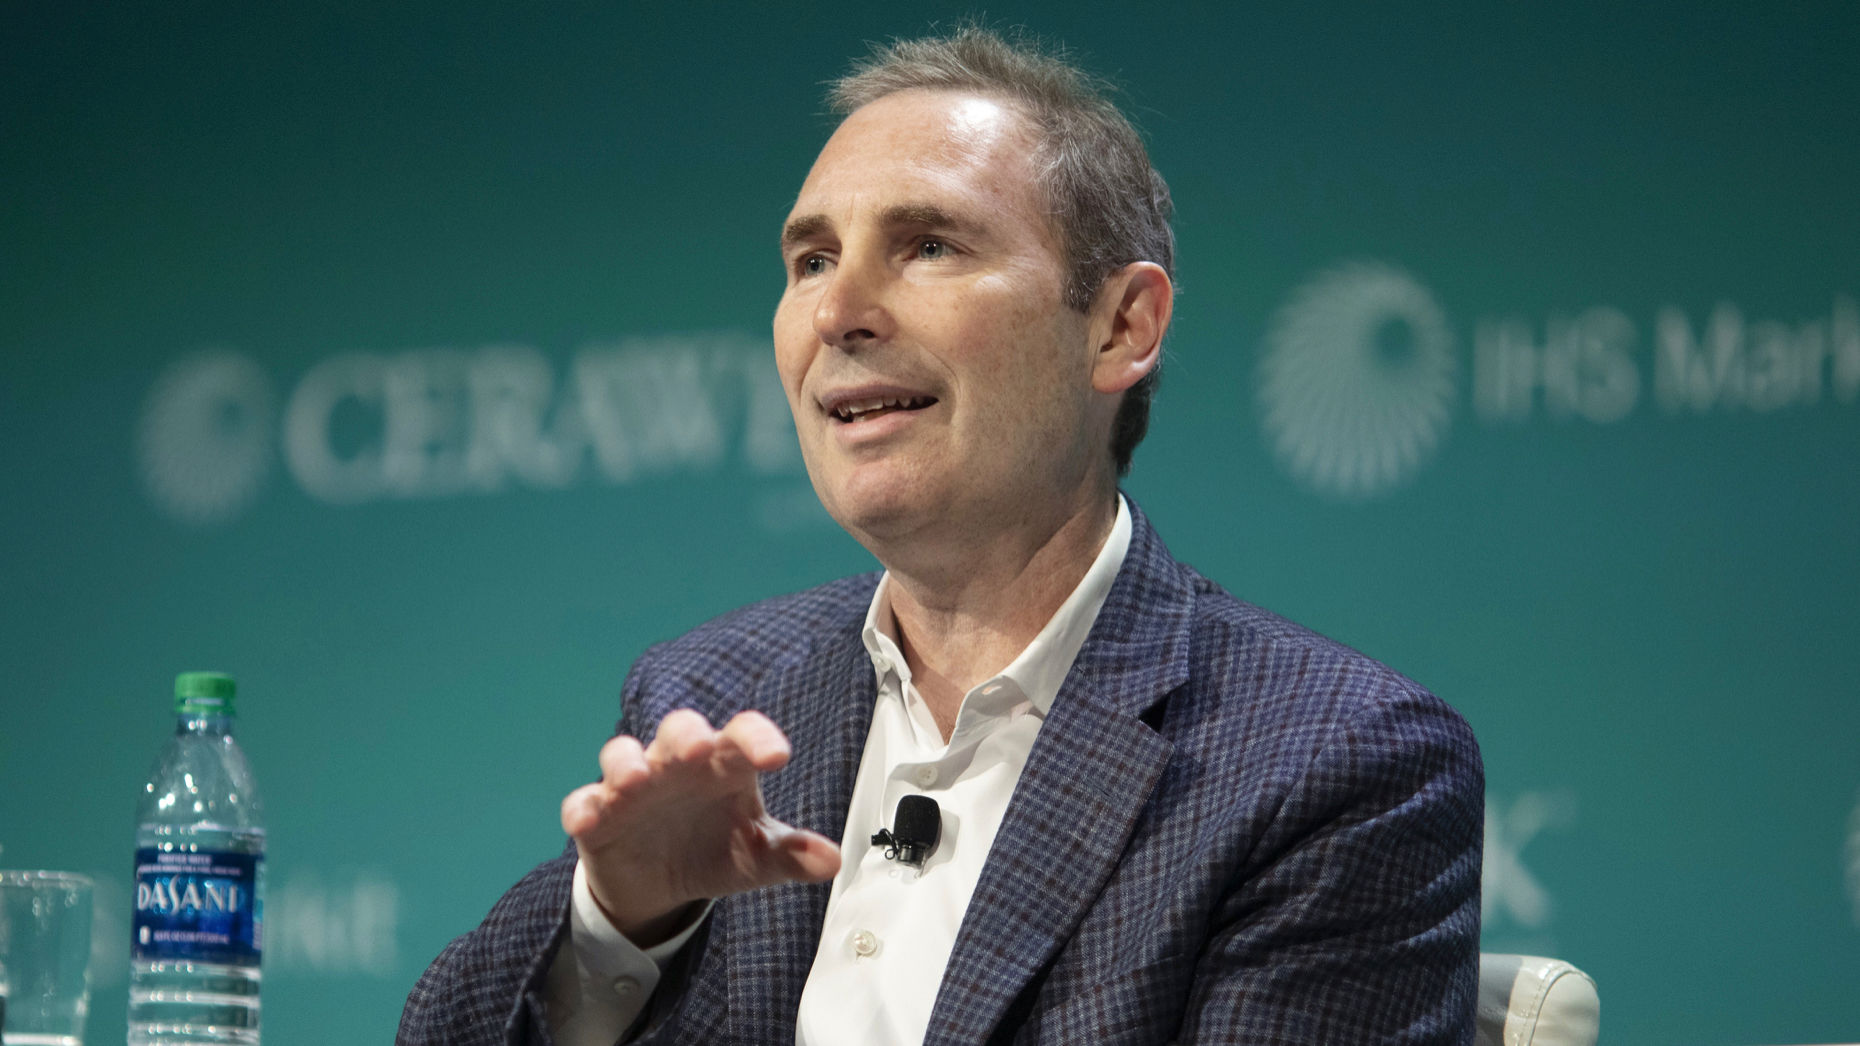 Amazon Web Services CEO Andy Jassy at a conference in March. Photo by Bloomberg